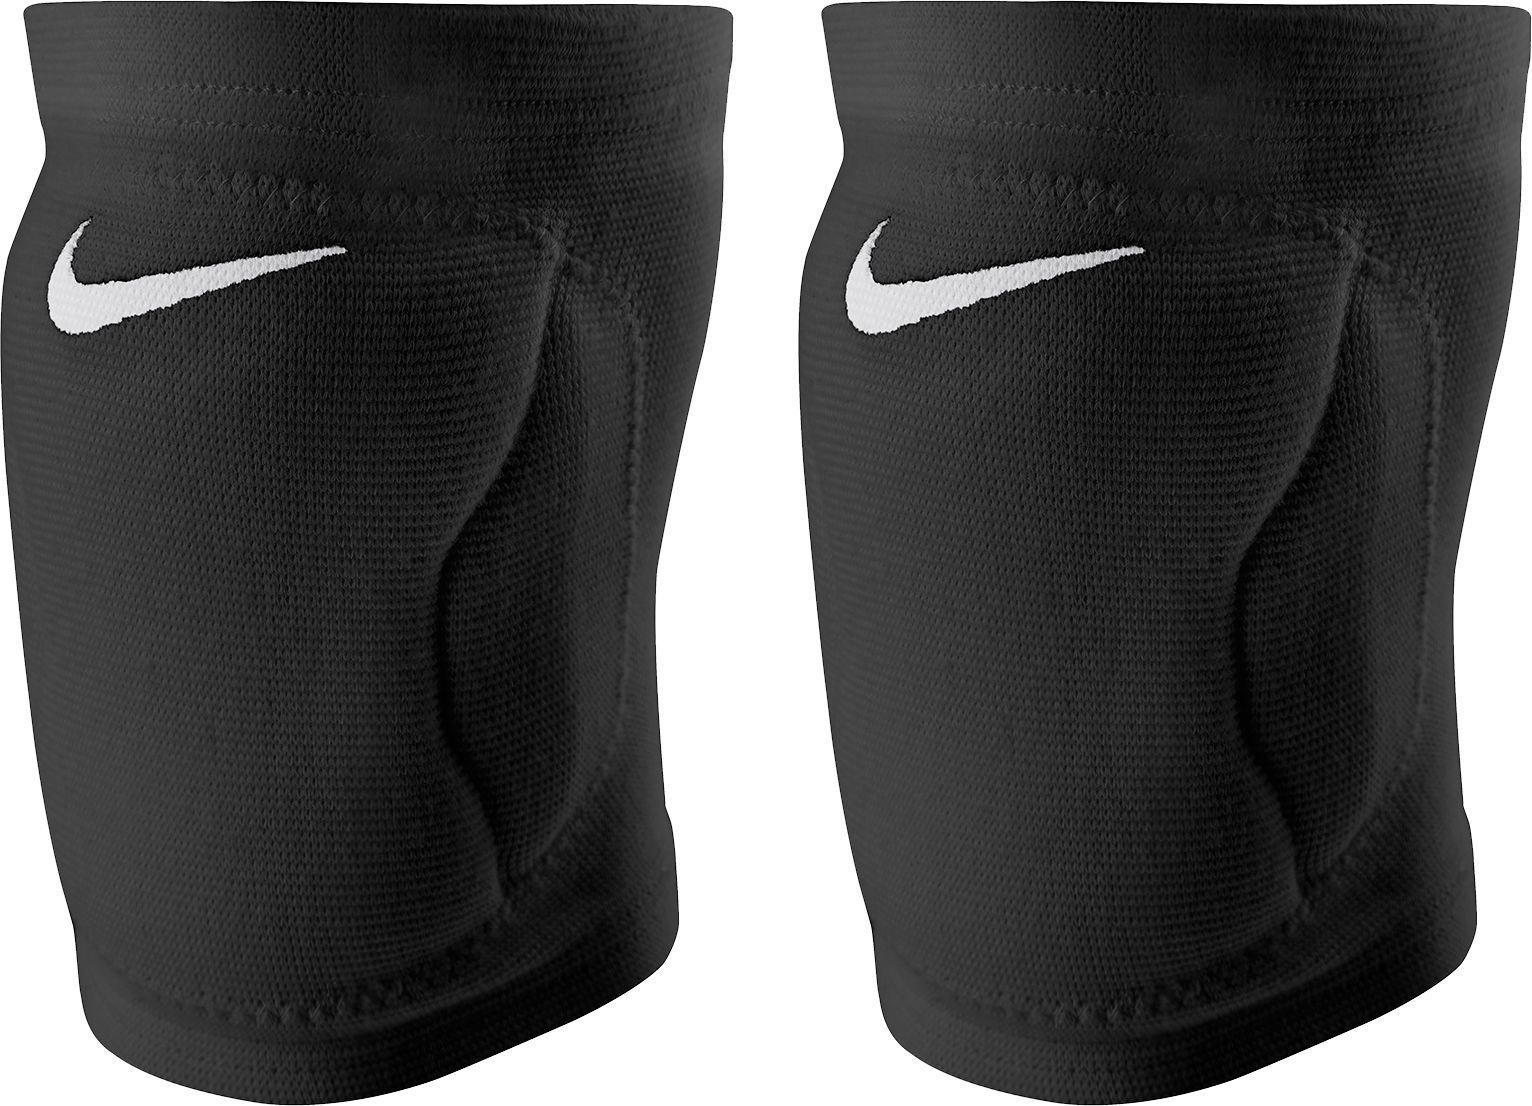 Nike Streak Volleyball Knee Pads Size Xss In 2020 Volleyball Outfits Volleyball Knee Pads Nike Volleyball